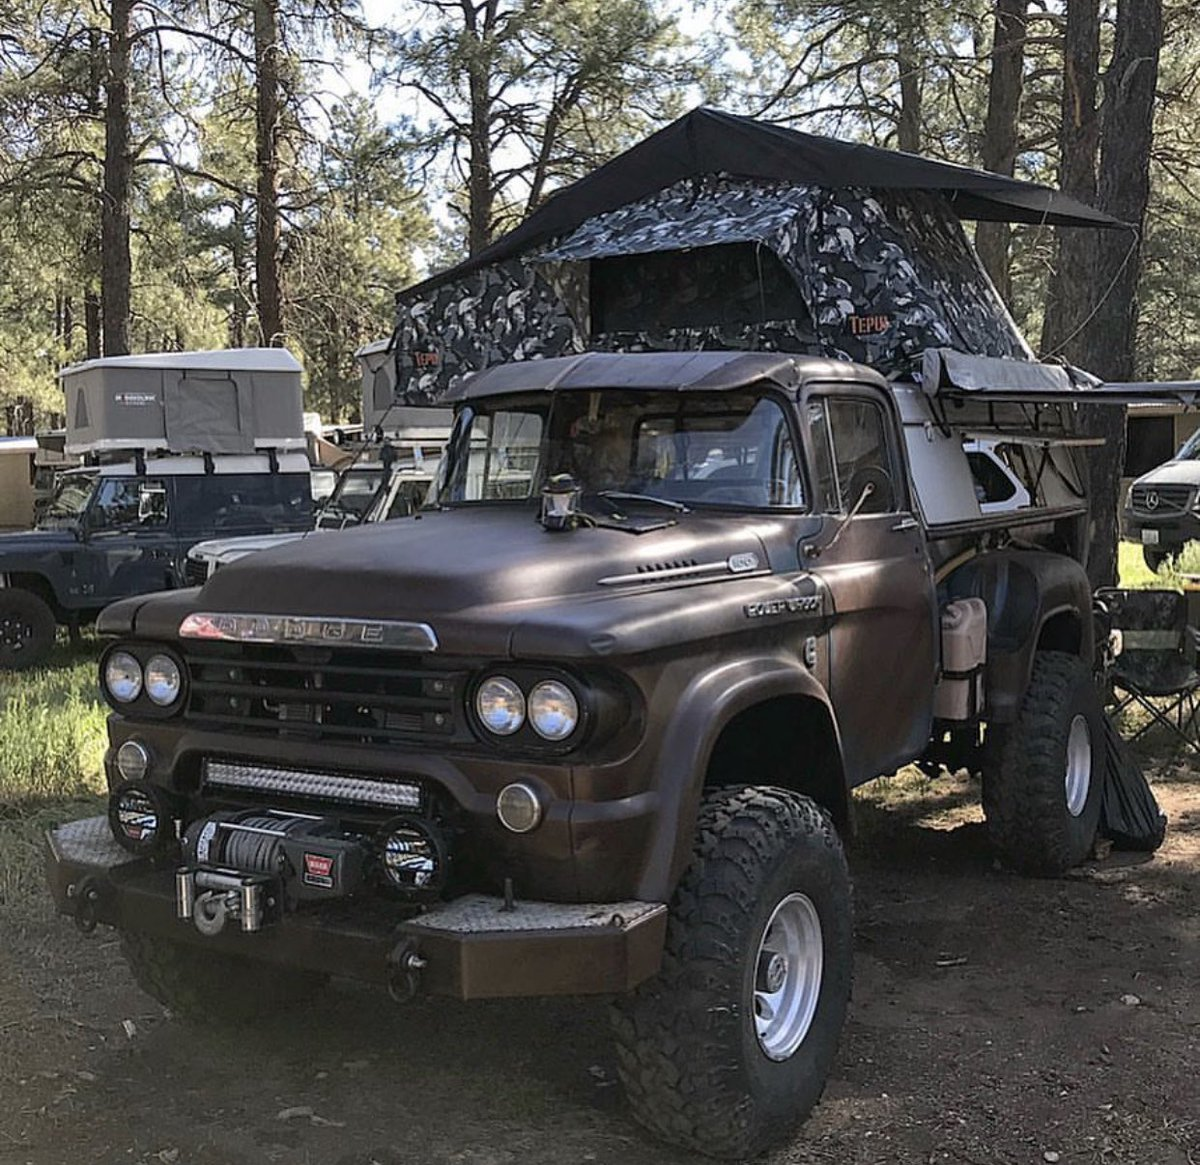 Mopar Unlimited On Twitter You Can Go Anywhere You Desire When You Overland In A Vintage Dodge Ram Power Wagon Moparornocar Moparchat